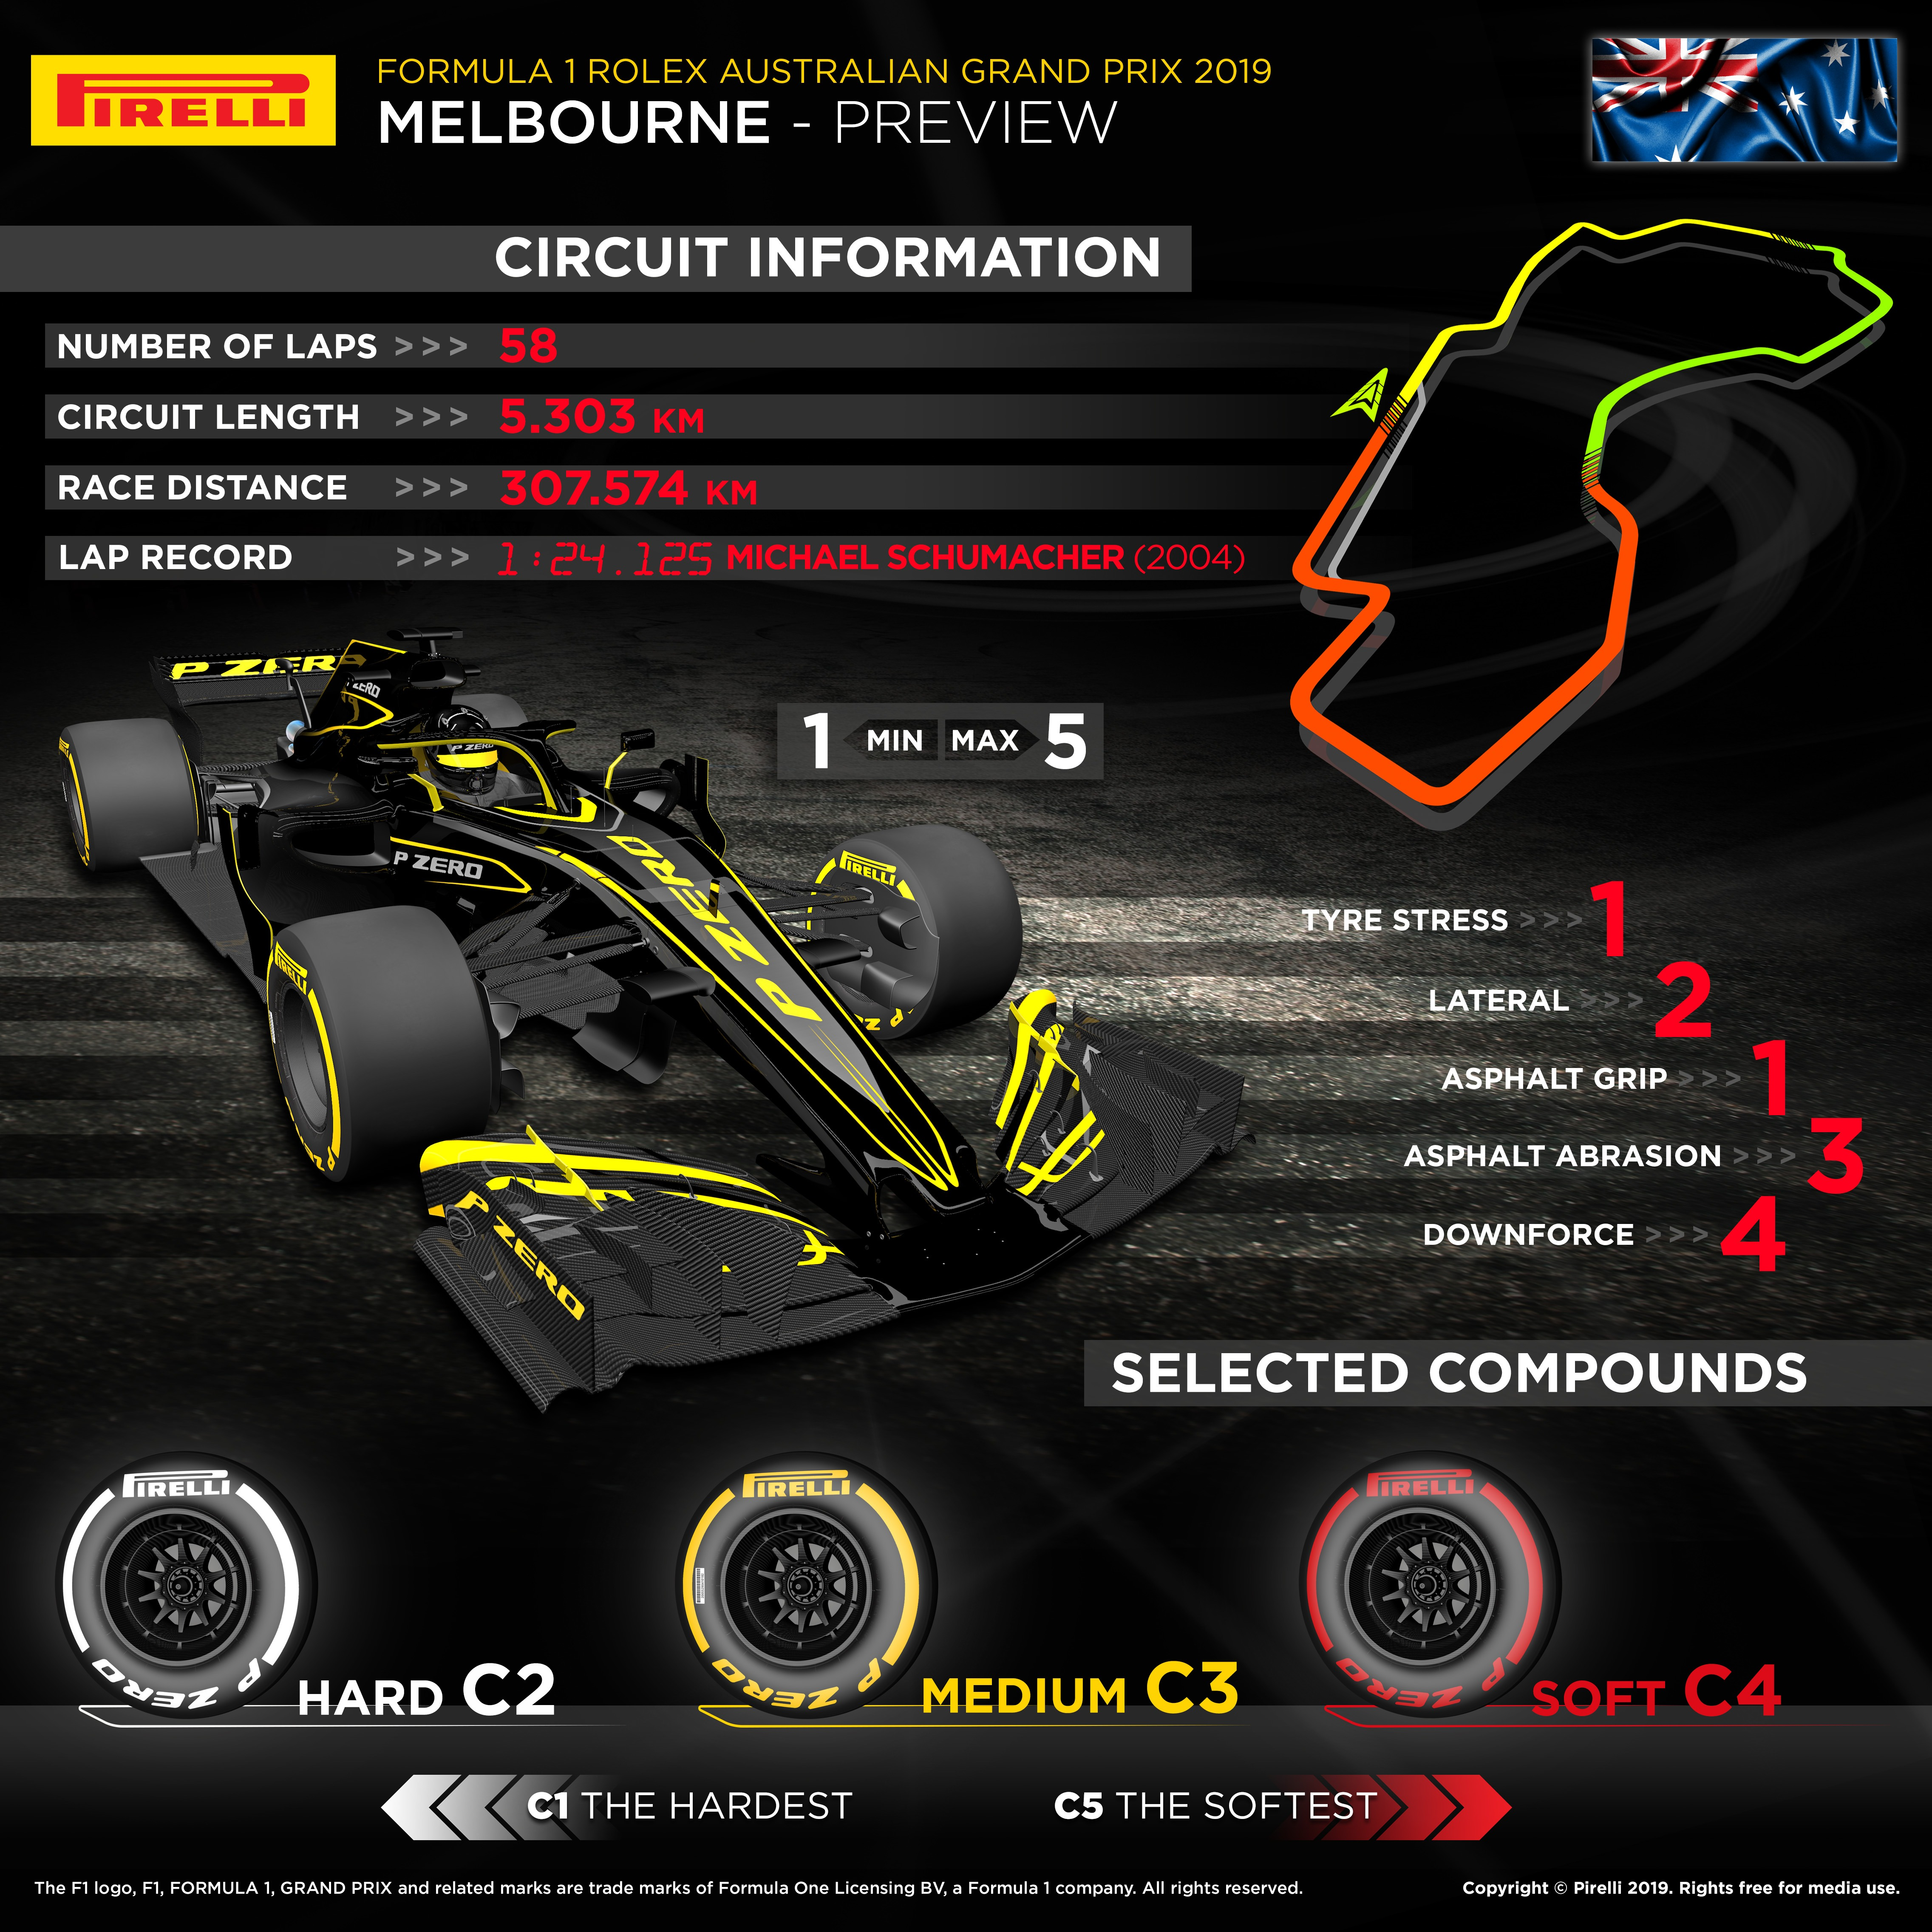 2019 Melbourne preview